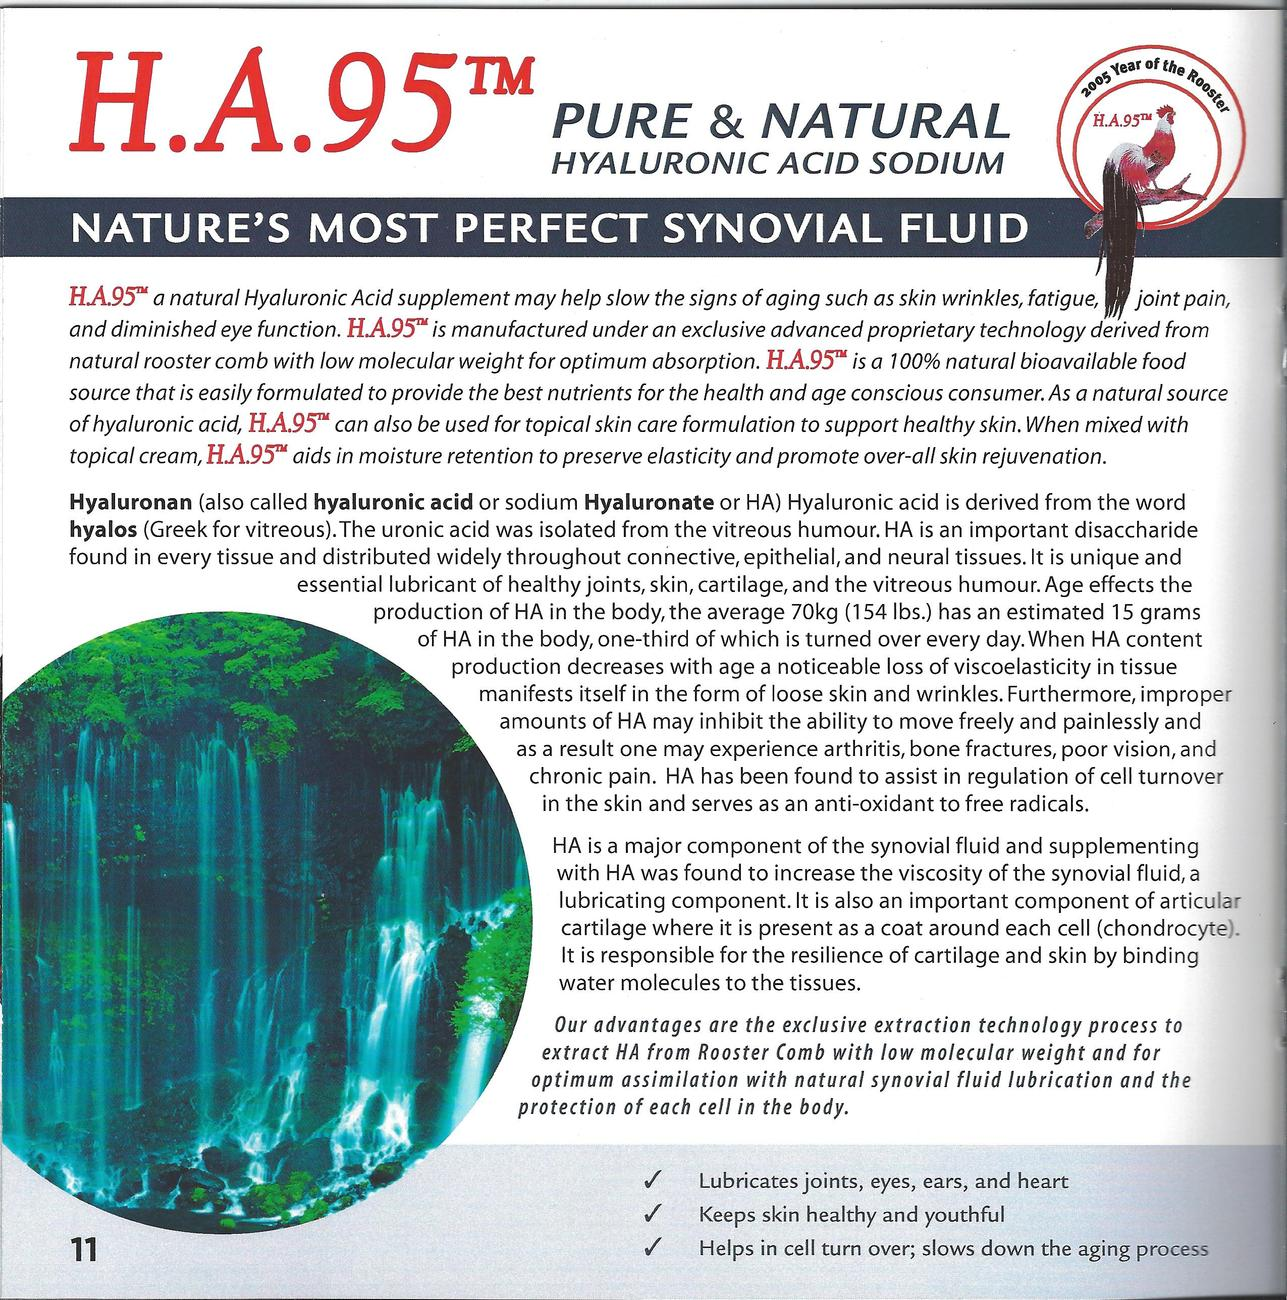 PURE AND NATURAL HYALURONIC ACID LUBRICATES JOINTS, KEEPS SKIN HEALTHY